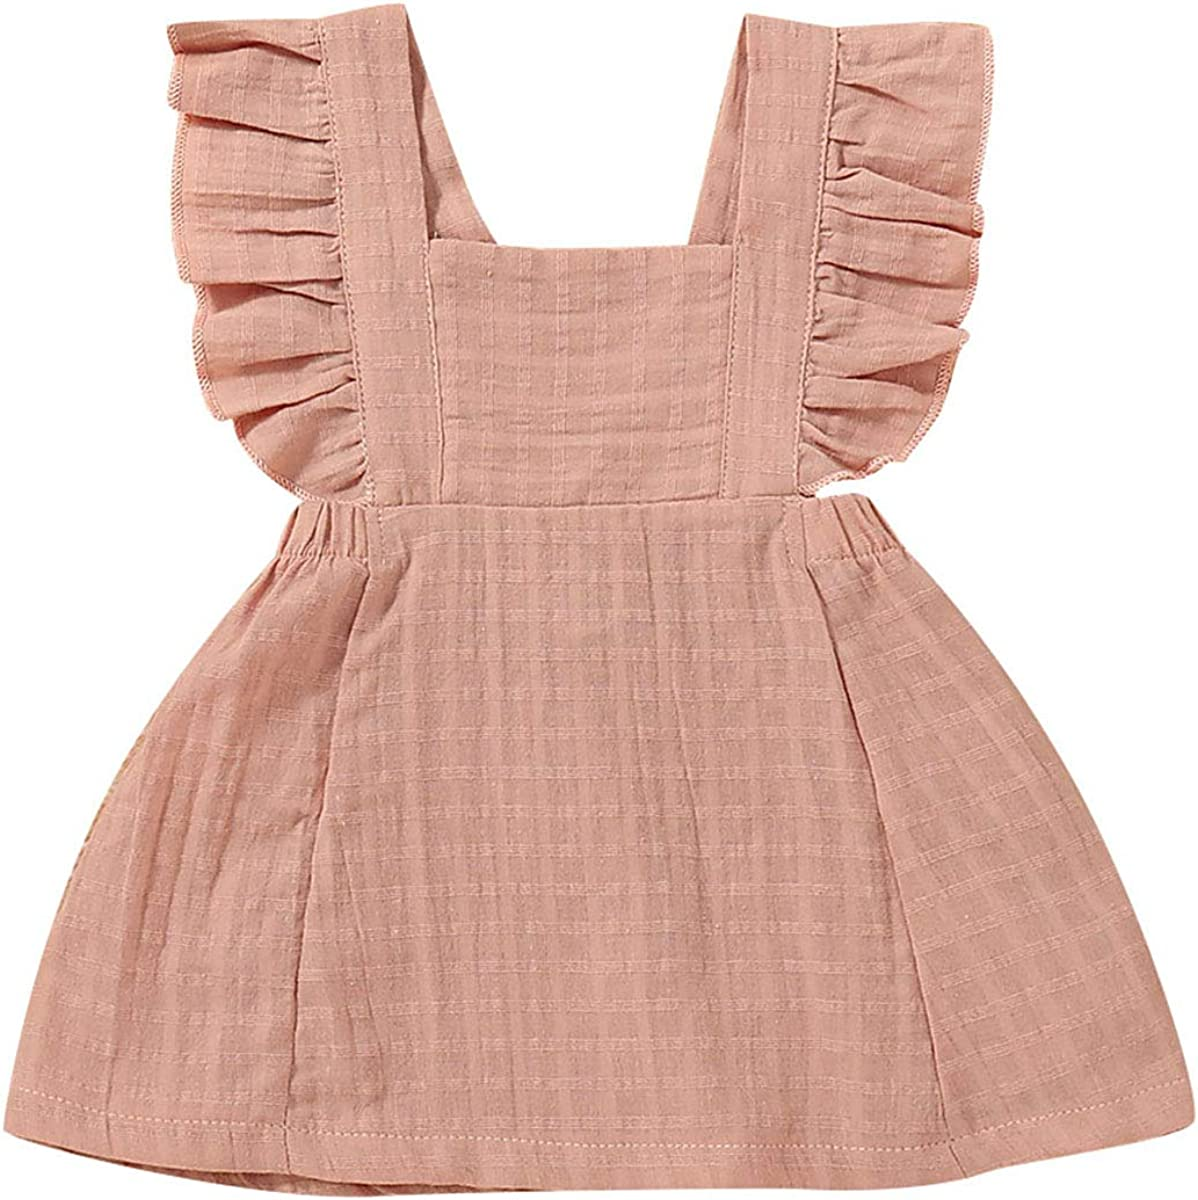 Baby Girl Casual Ruffled Dress Pure Color Sleeveless Dress for Summer Brown